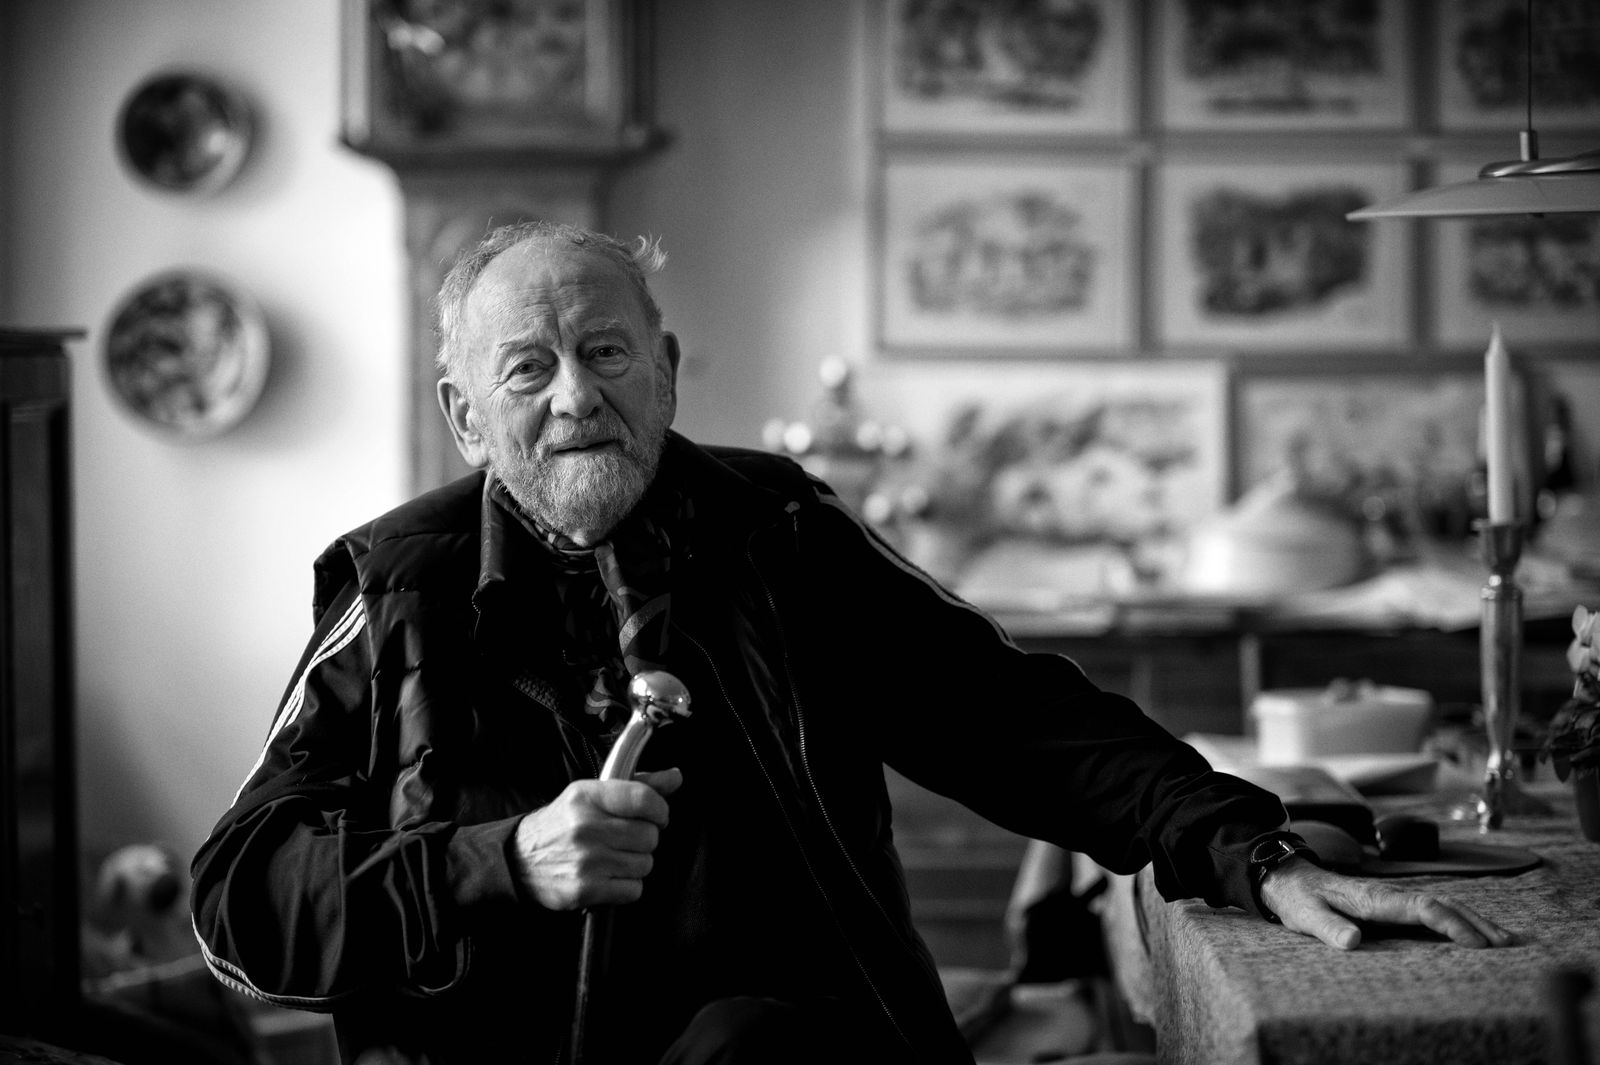 VIBY DENMARK Danish cartoonist Kurt Westergaard poses for the photographer in his house in Viby